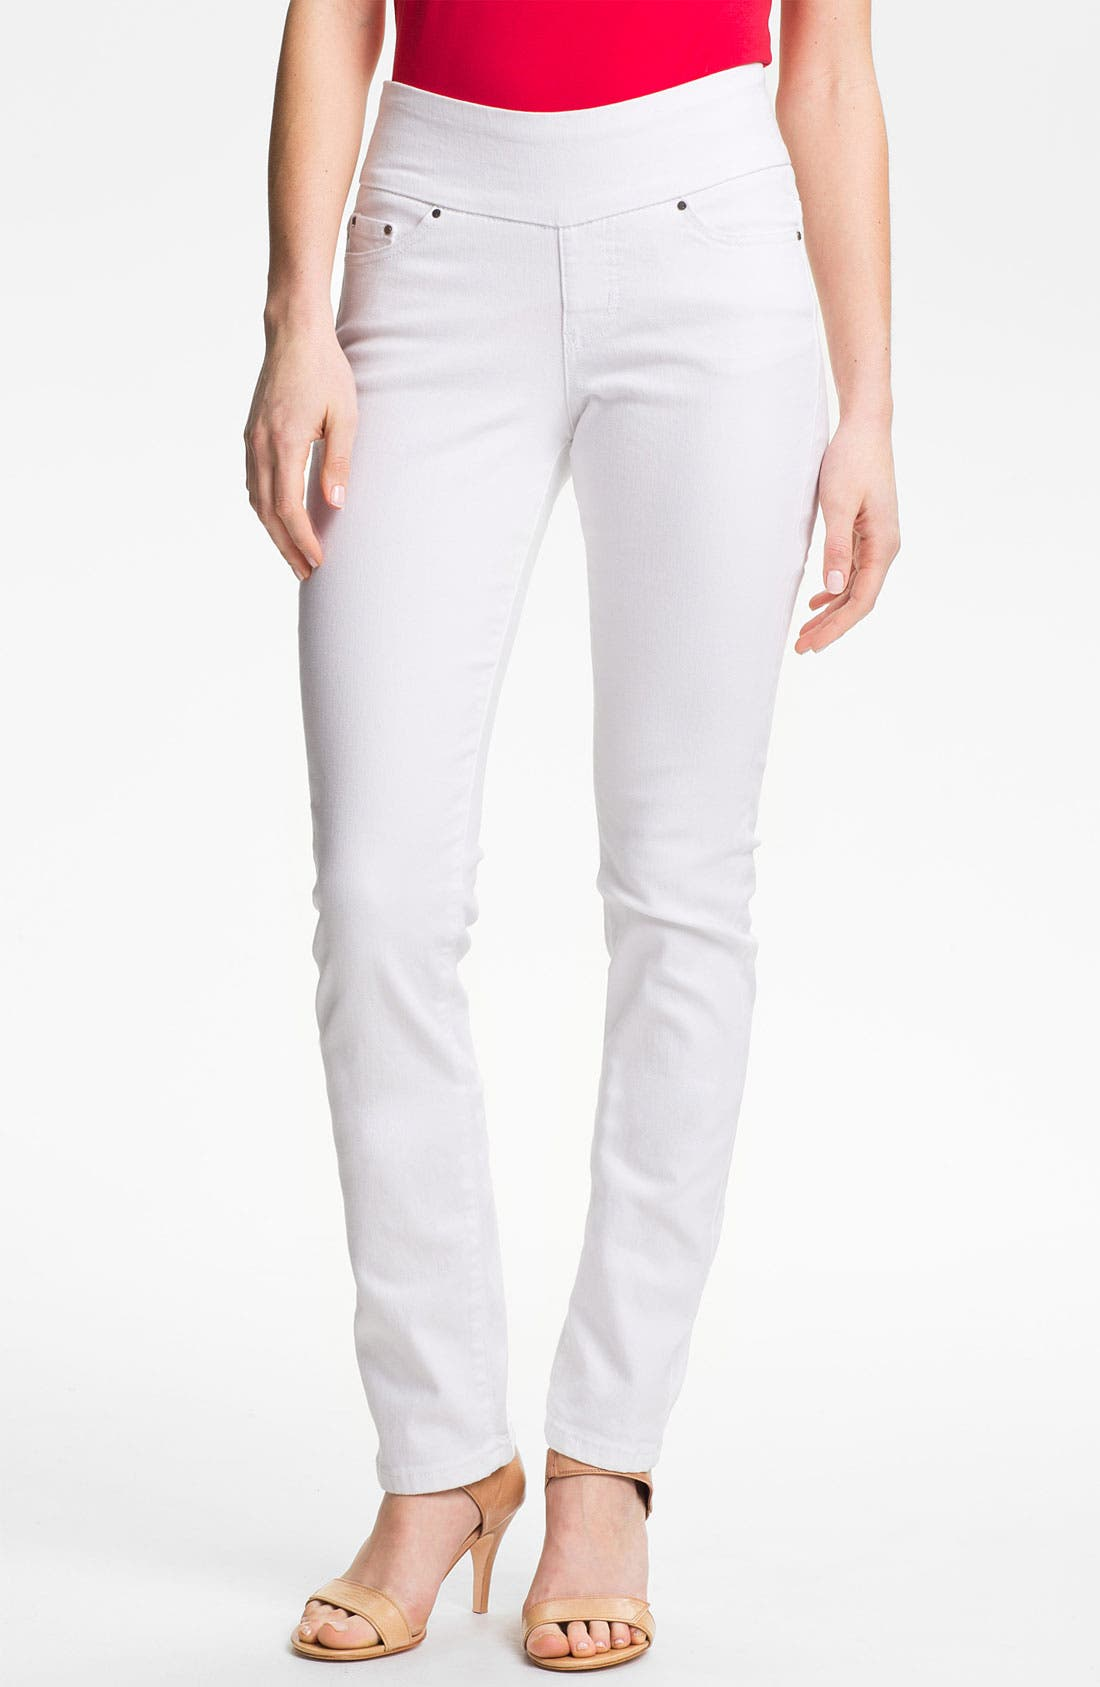 Alternate Image 1 Selected - Jag Jeans 'Peri' Straight Leg Jeans (Petite)